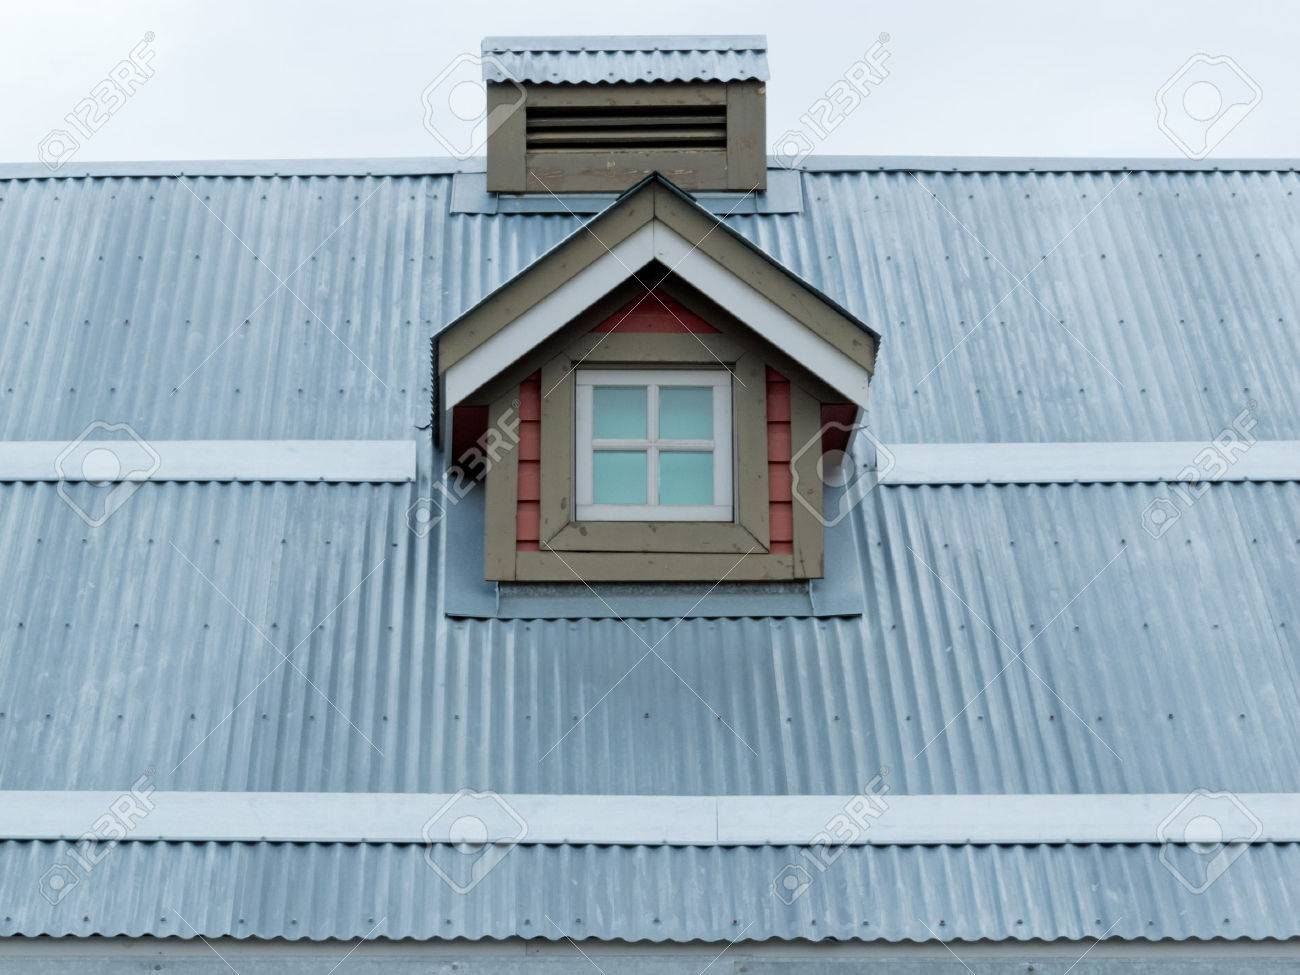 Architectural Detail Of Small Dormer Window In Metal Sheet Roof Of  Residential House Stock Photo